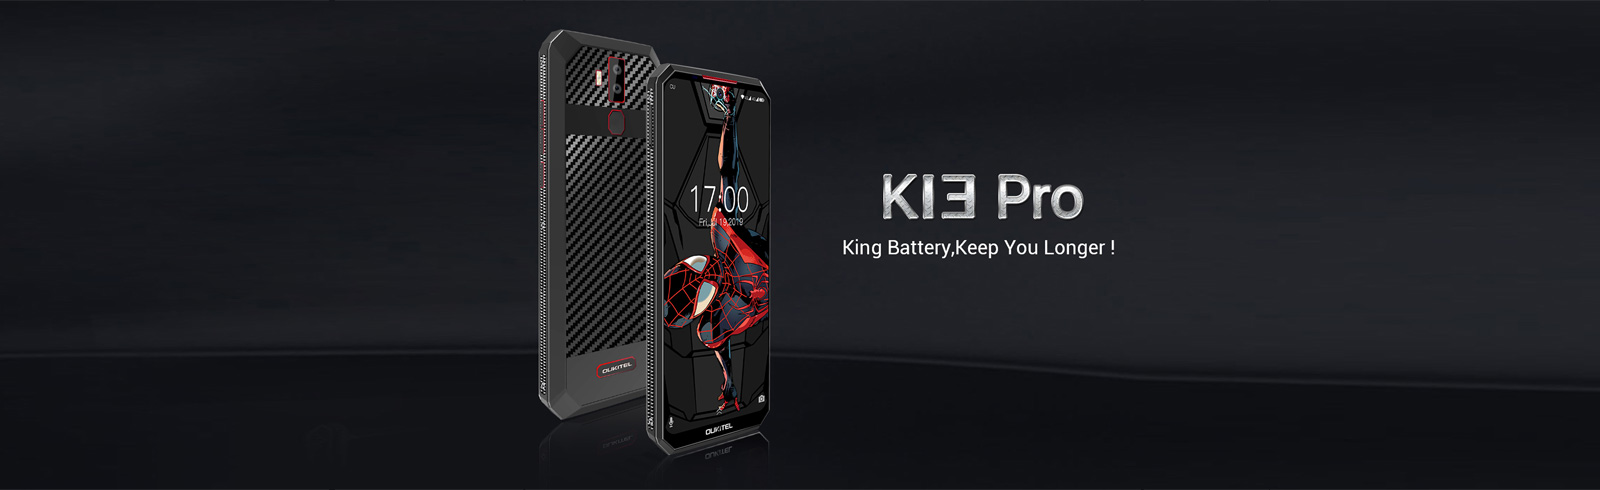 Oukitel is back with a bang, announces the K13 Pro with an 11,000 mAh battery and 30W fast charging